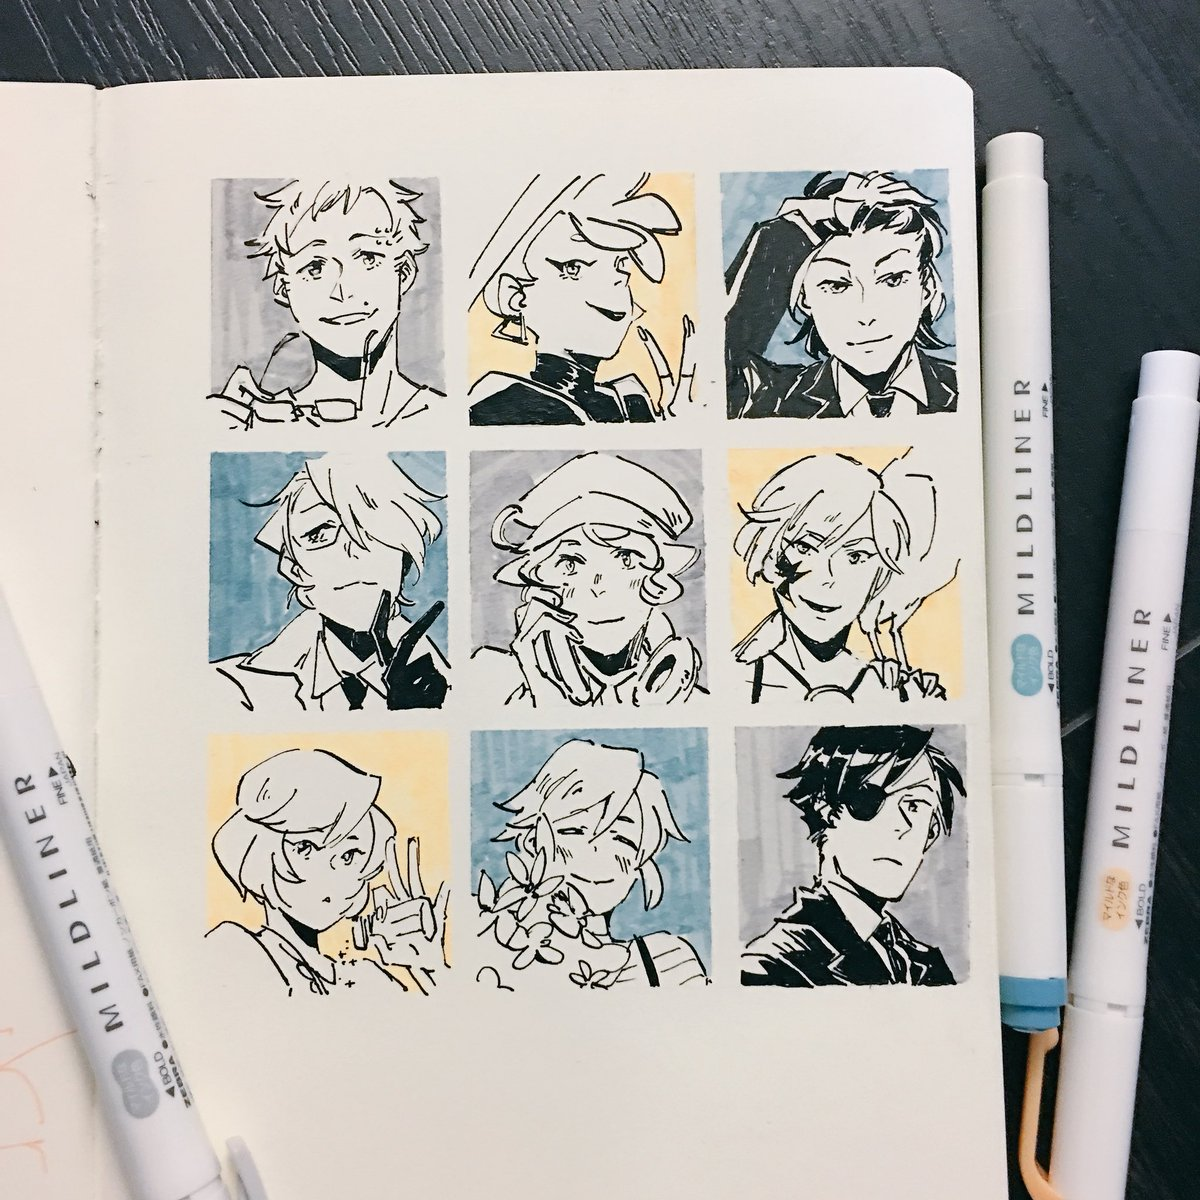 Drew that oc meme!! Thank you for letting me use ur chilluns as a practise for inking lol (inserted one of my own lol) <br>http://pic.twitter.com/7Cg6qCMeFP